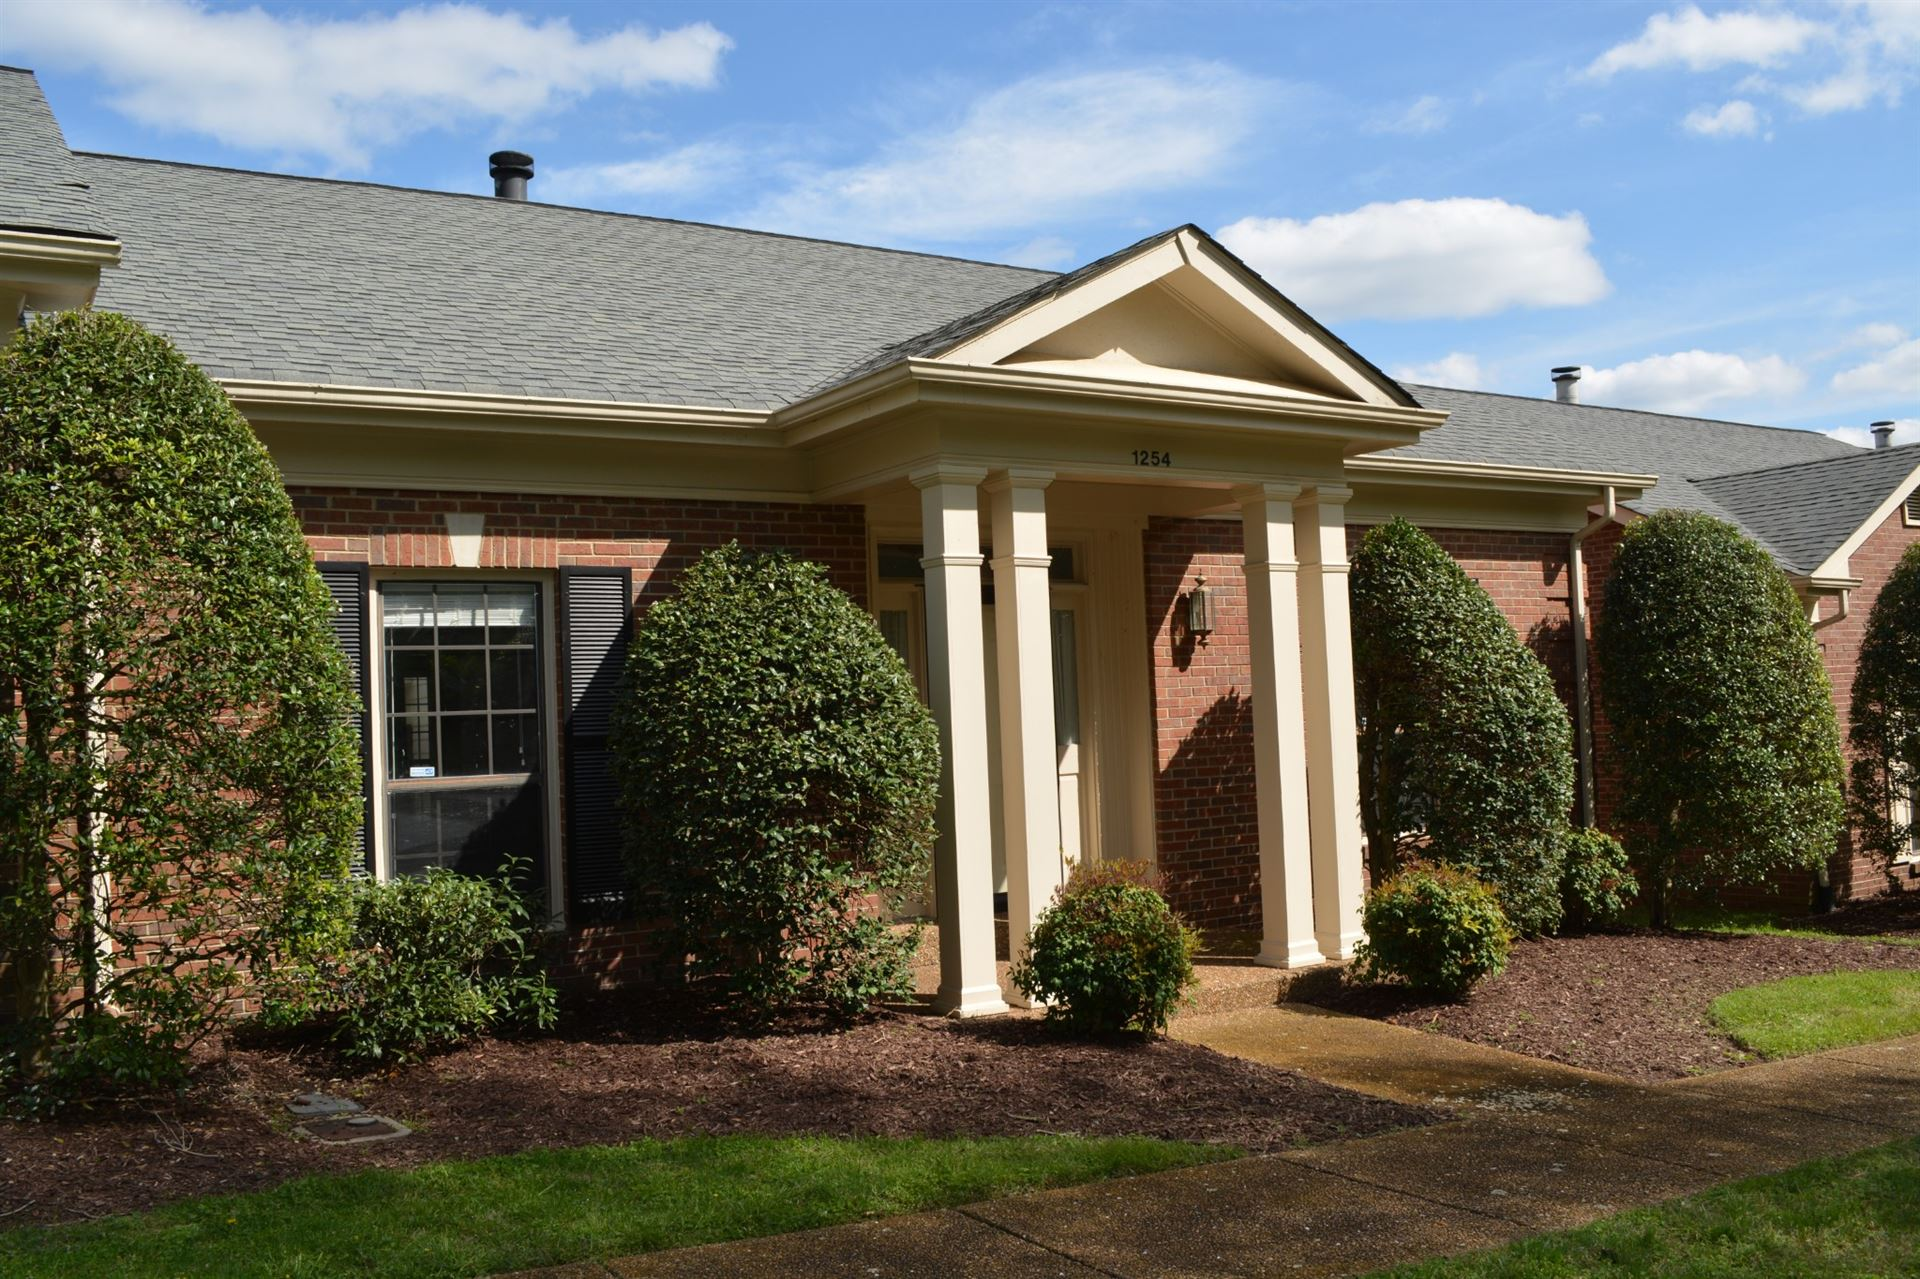 Photo of 1254 Brentwood Pt, Brentwood, TN 37027 (MLS # 2135607)